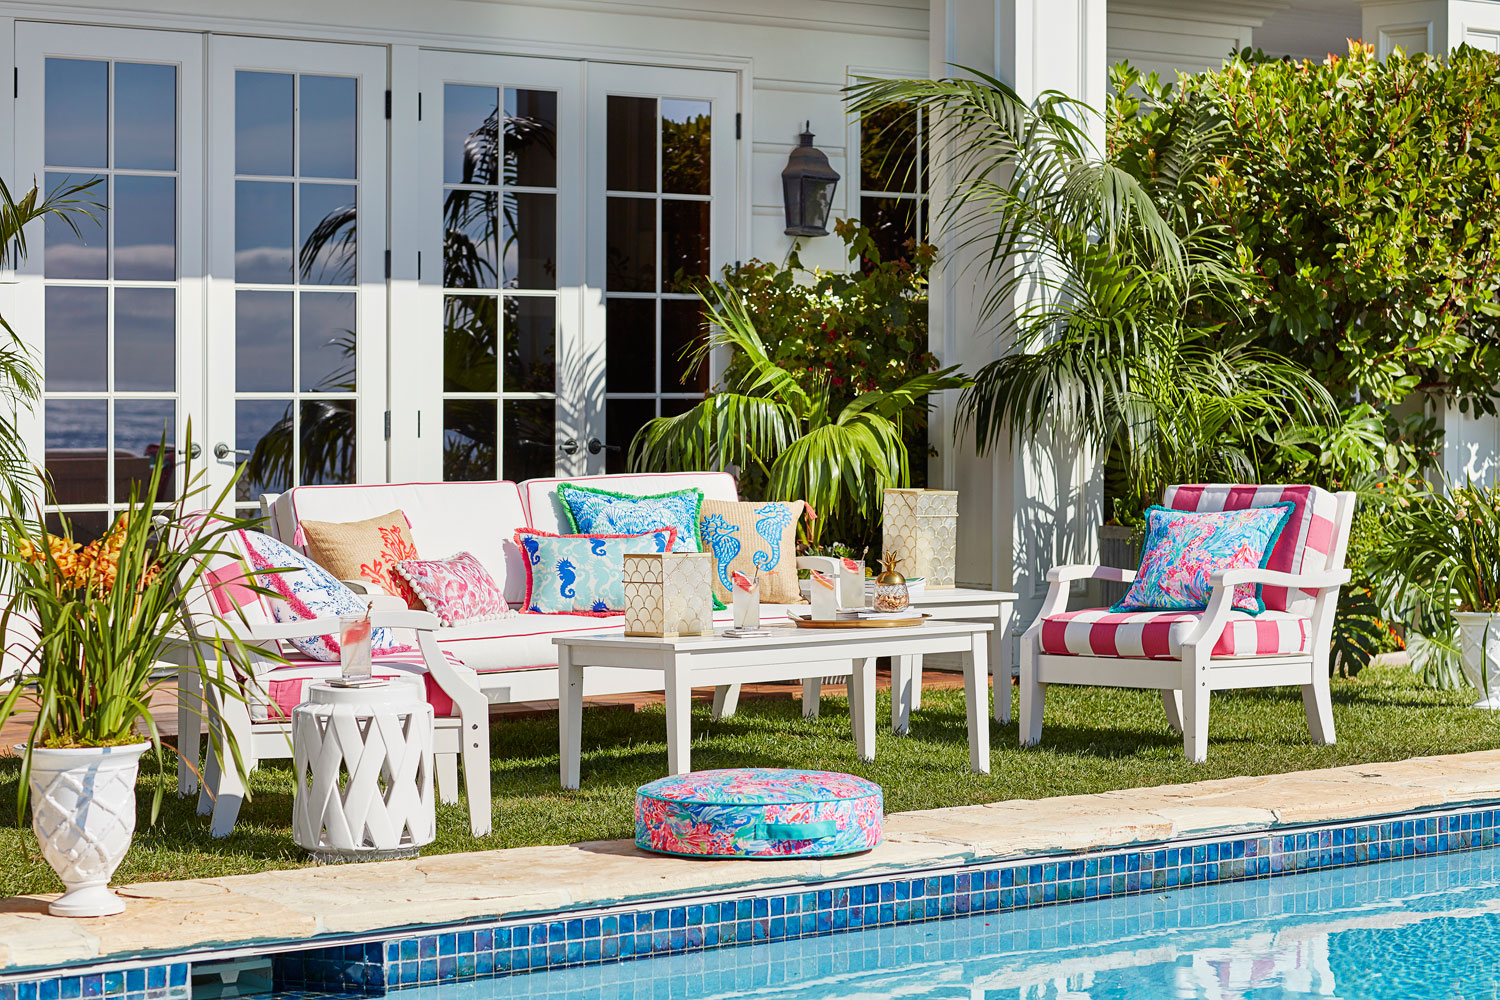 (Credit: Lilly Pulitzer For Pottery Barn)